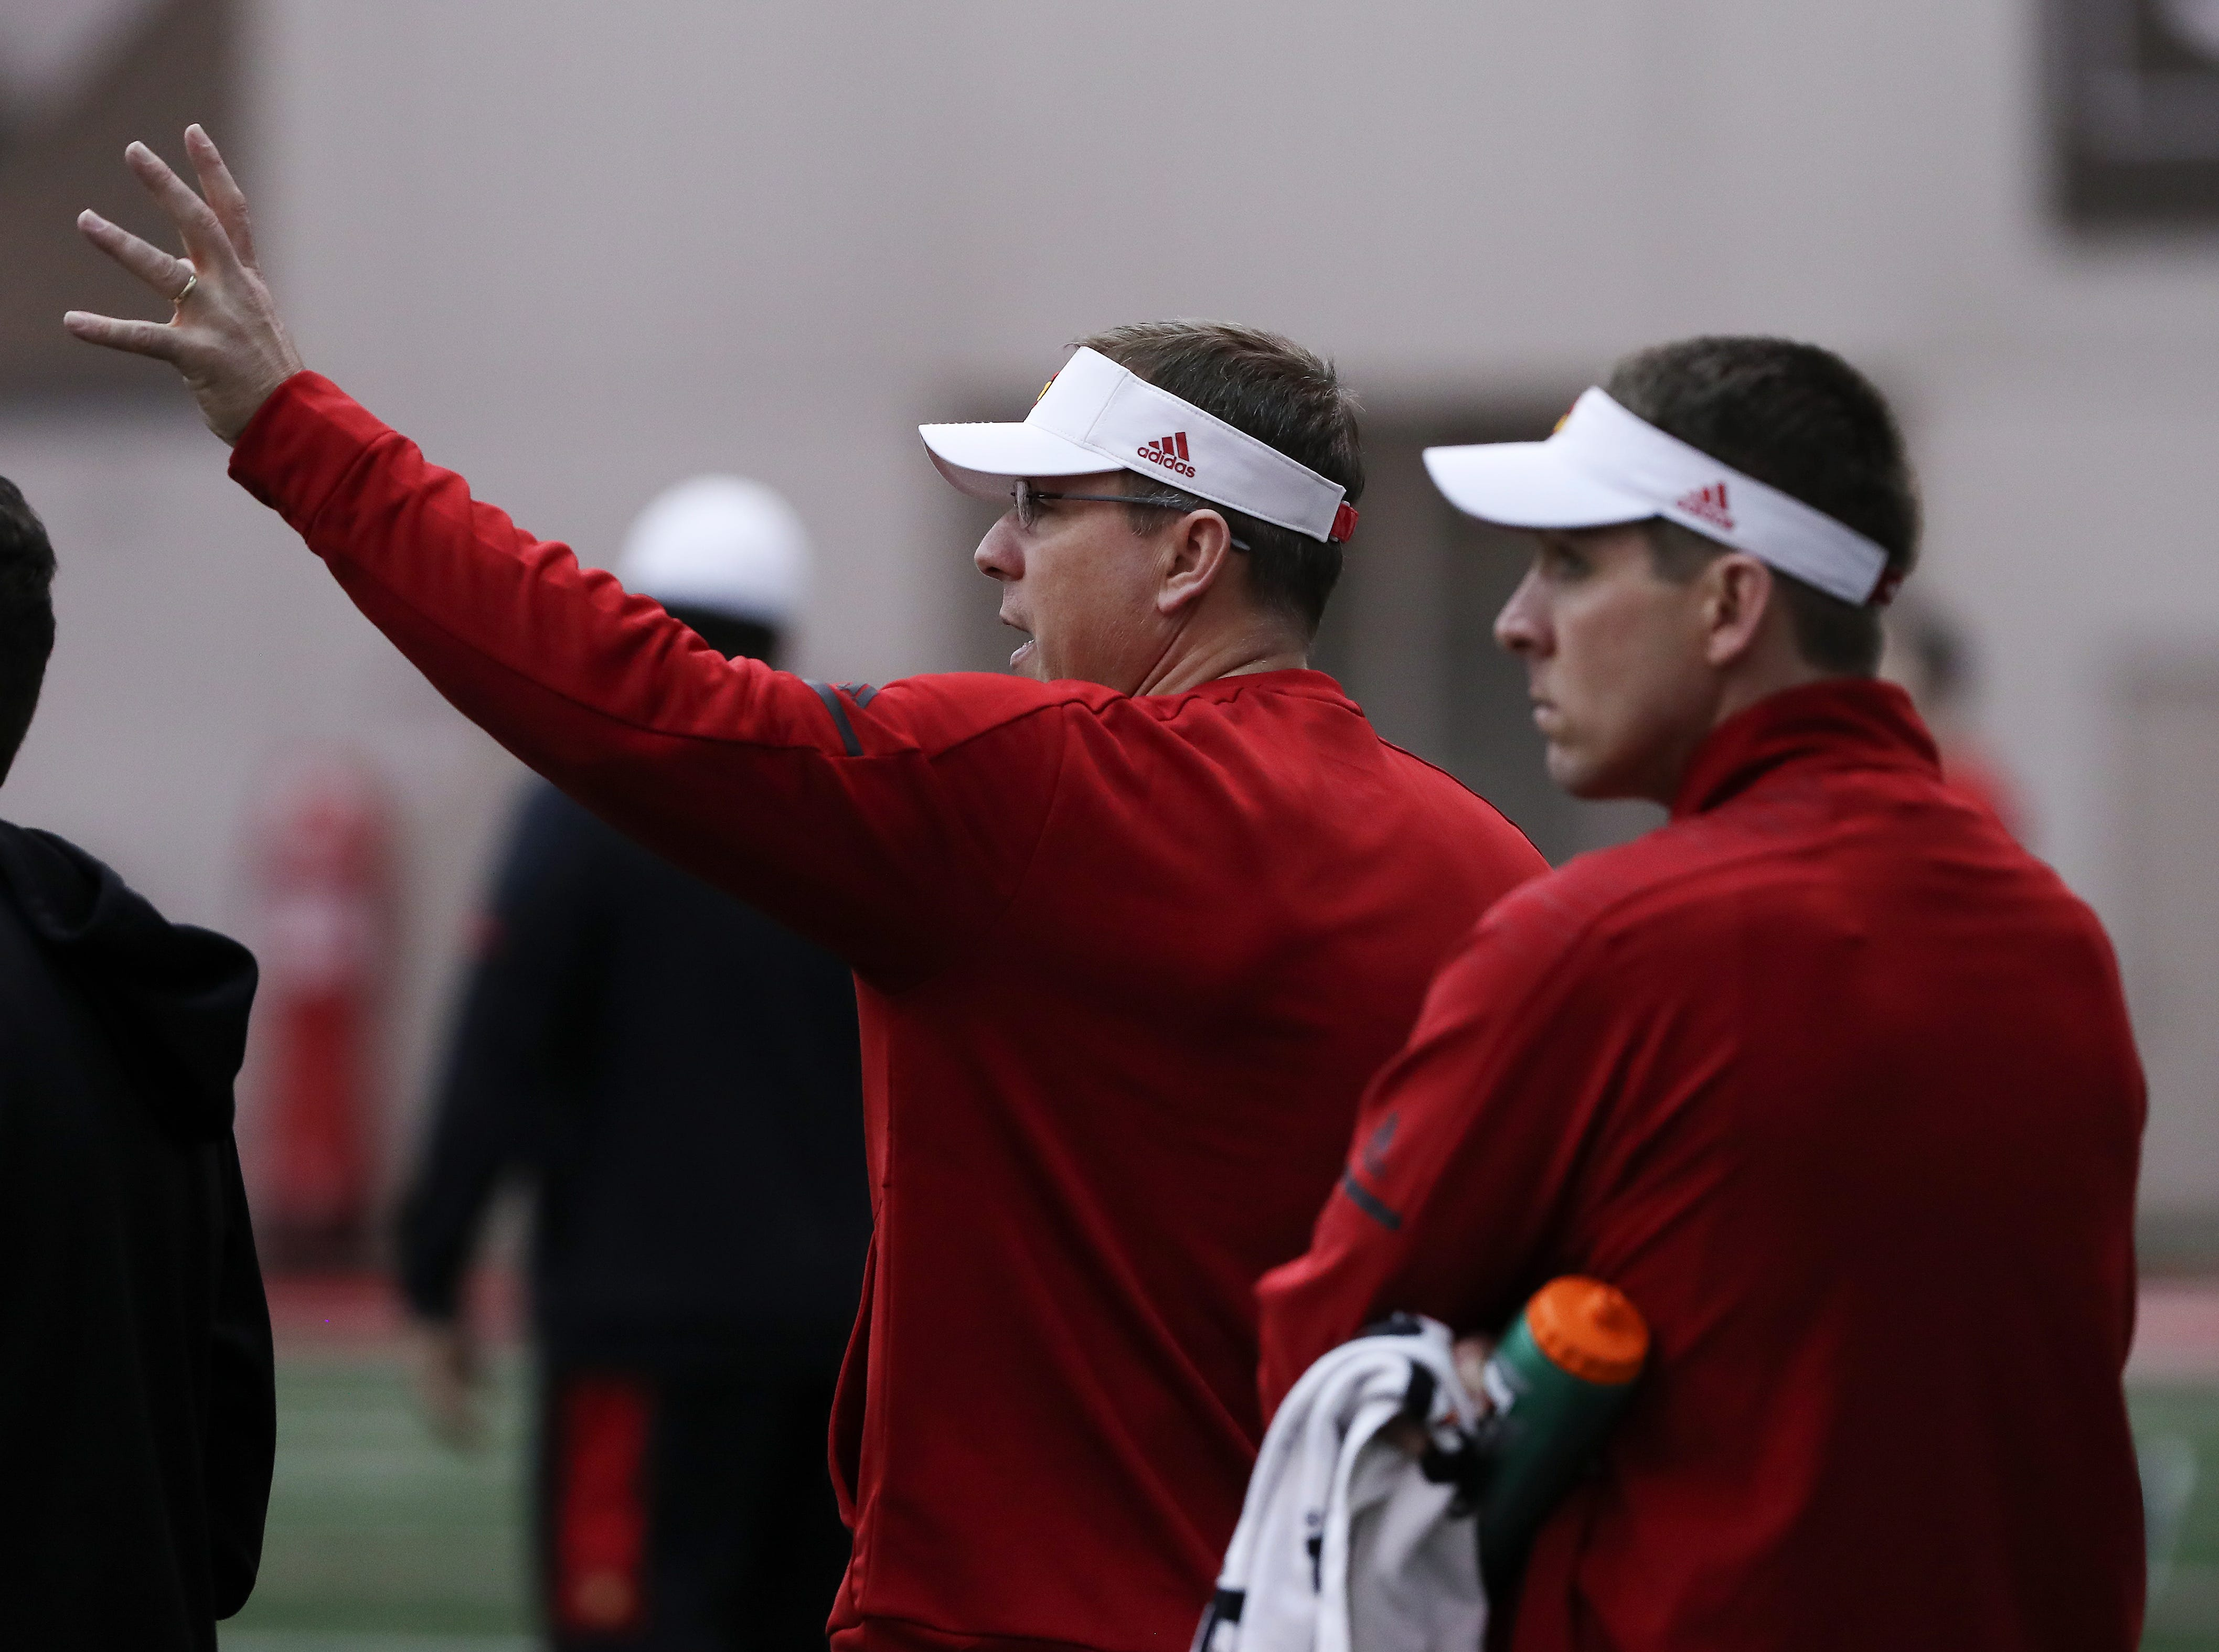 U of L head coach Scott Satterfield conducted practice at the Trager Center.